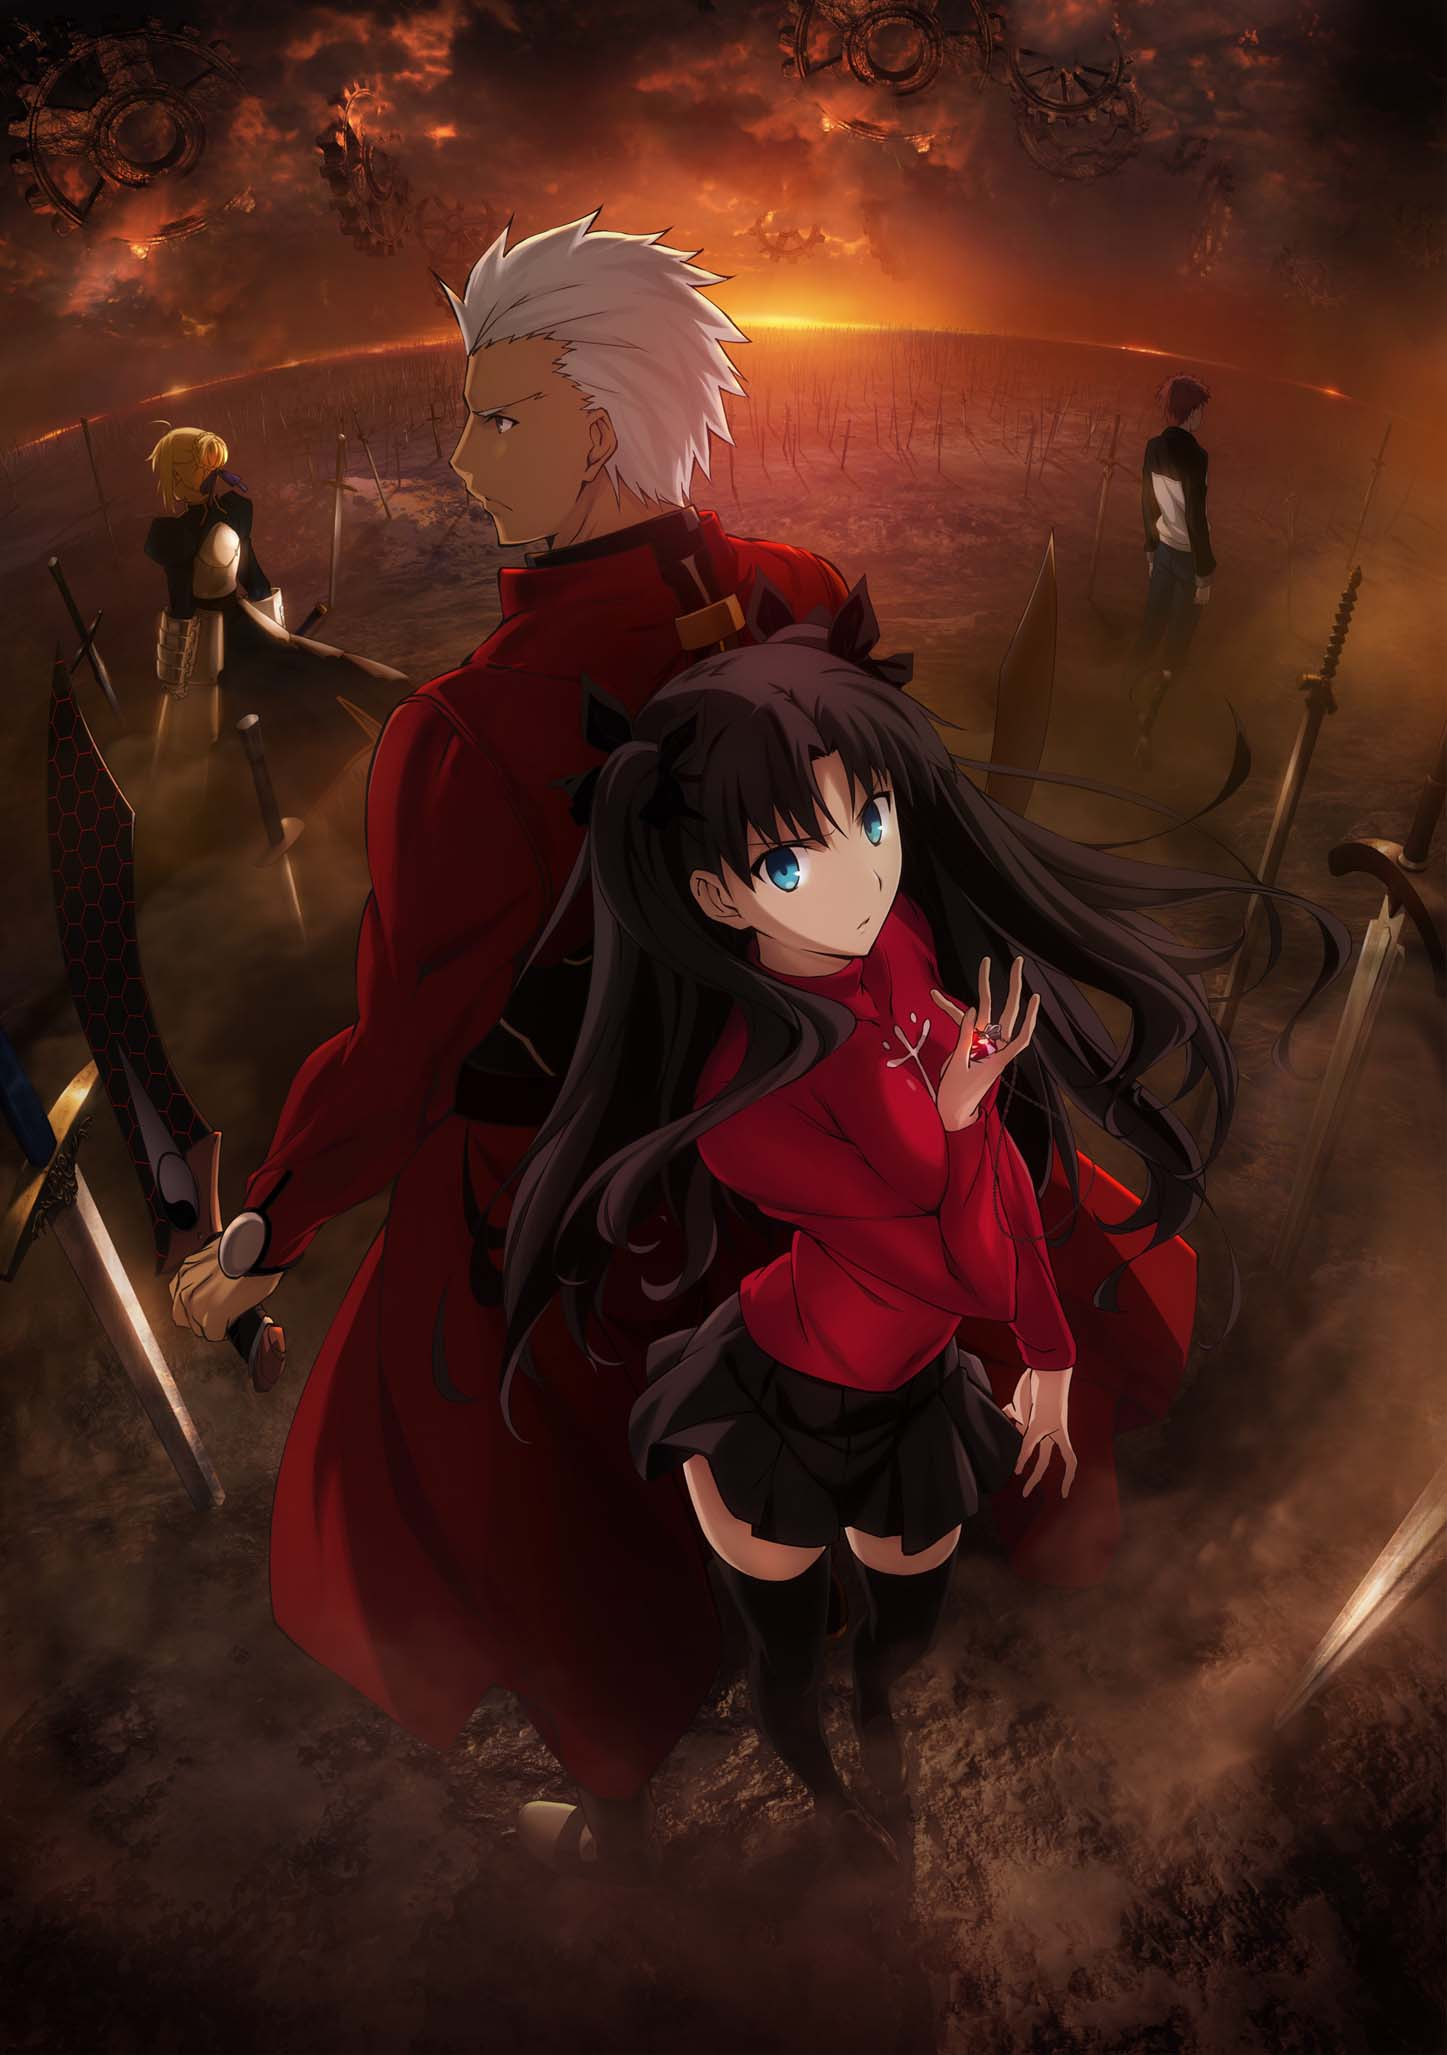 ©TYPE-MOON ・ufotable・FATE/STAY NIGHT Production Committee